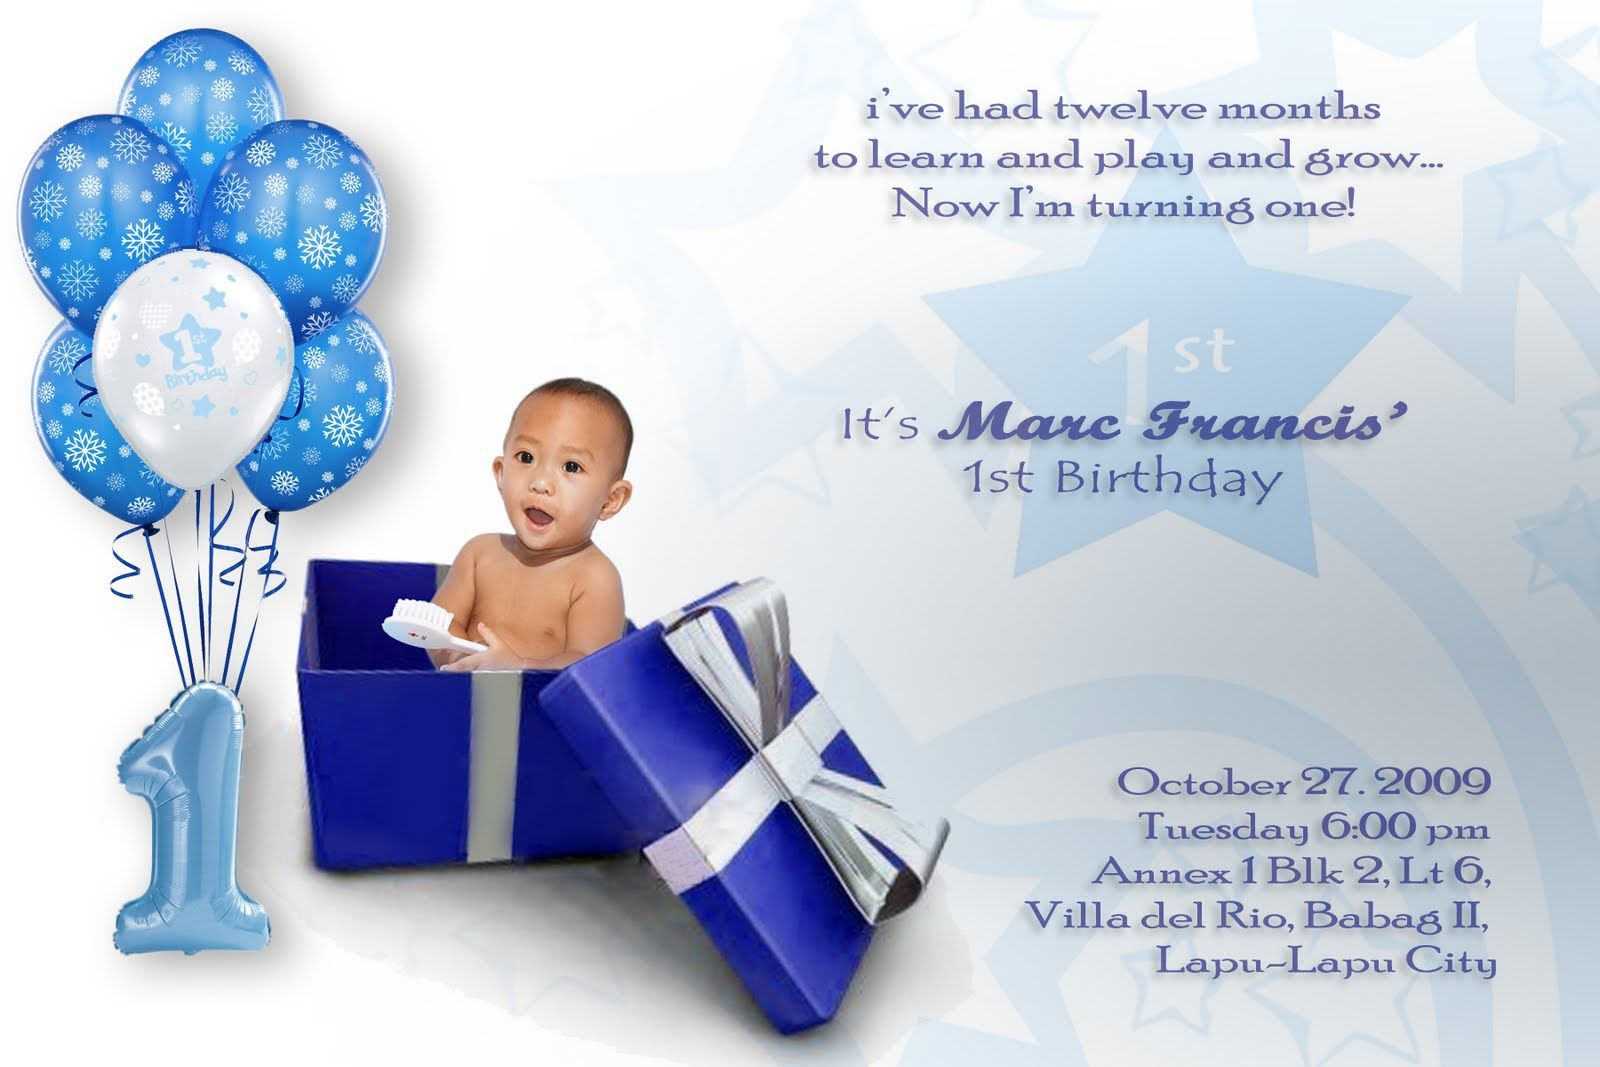 Birthday Invitation Cards For Boys | Birthday Invitation Cards For ...